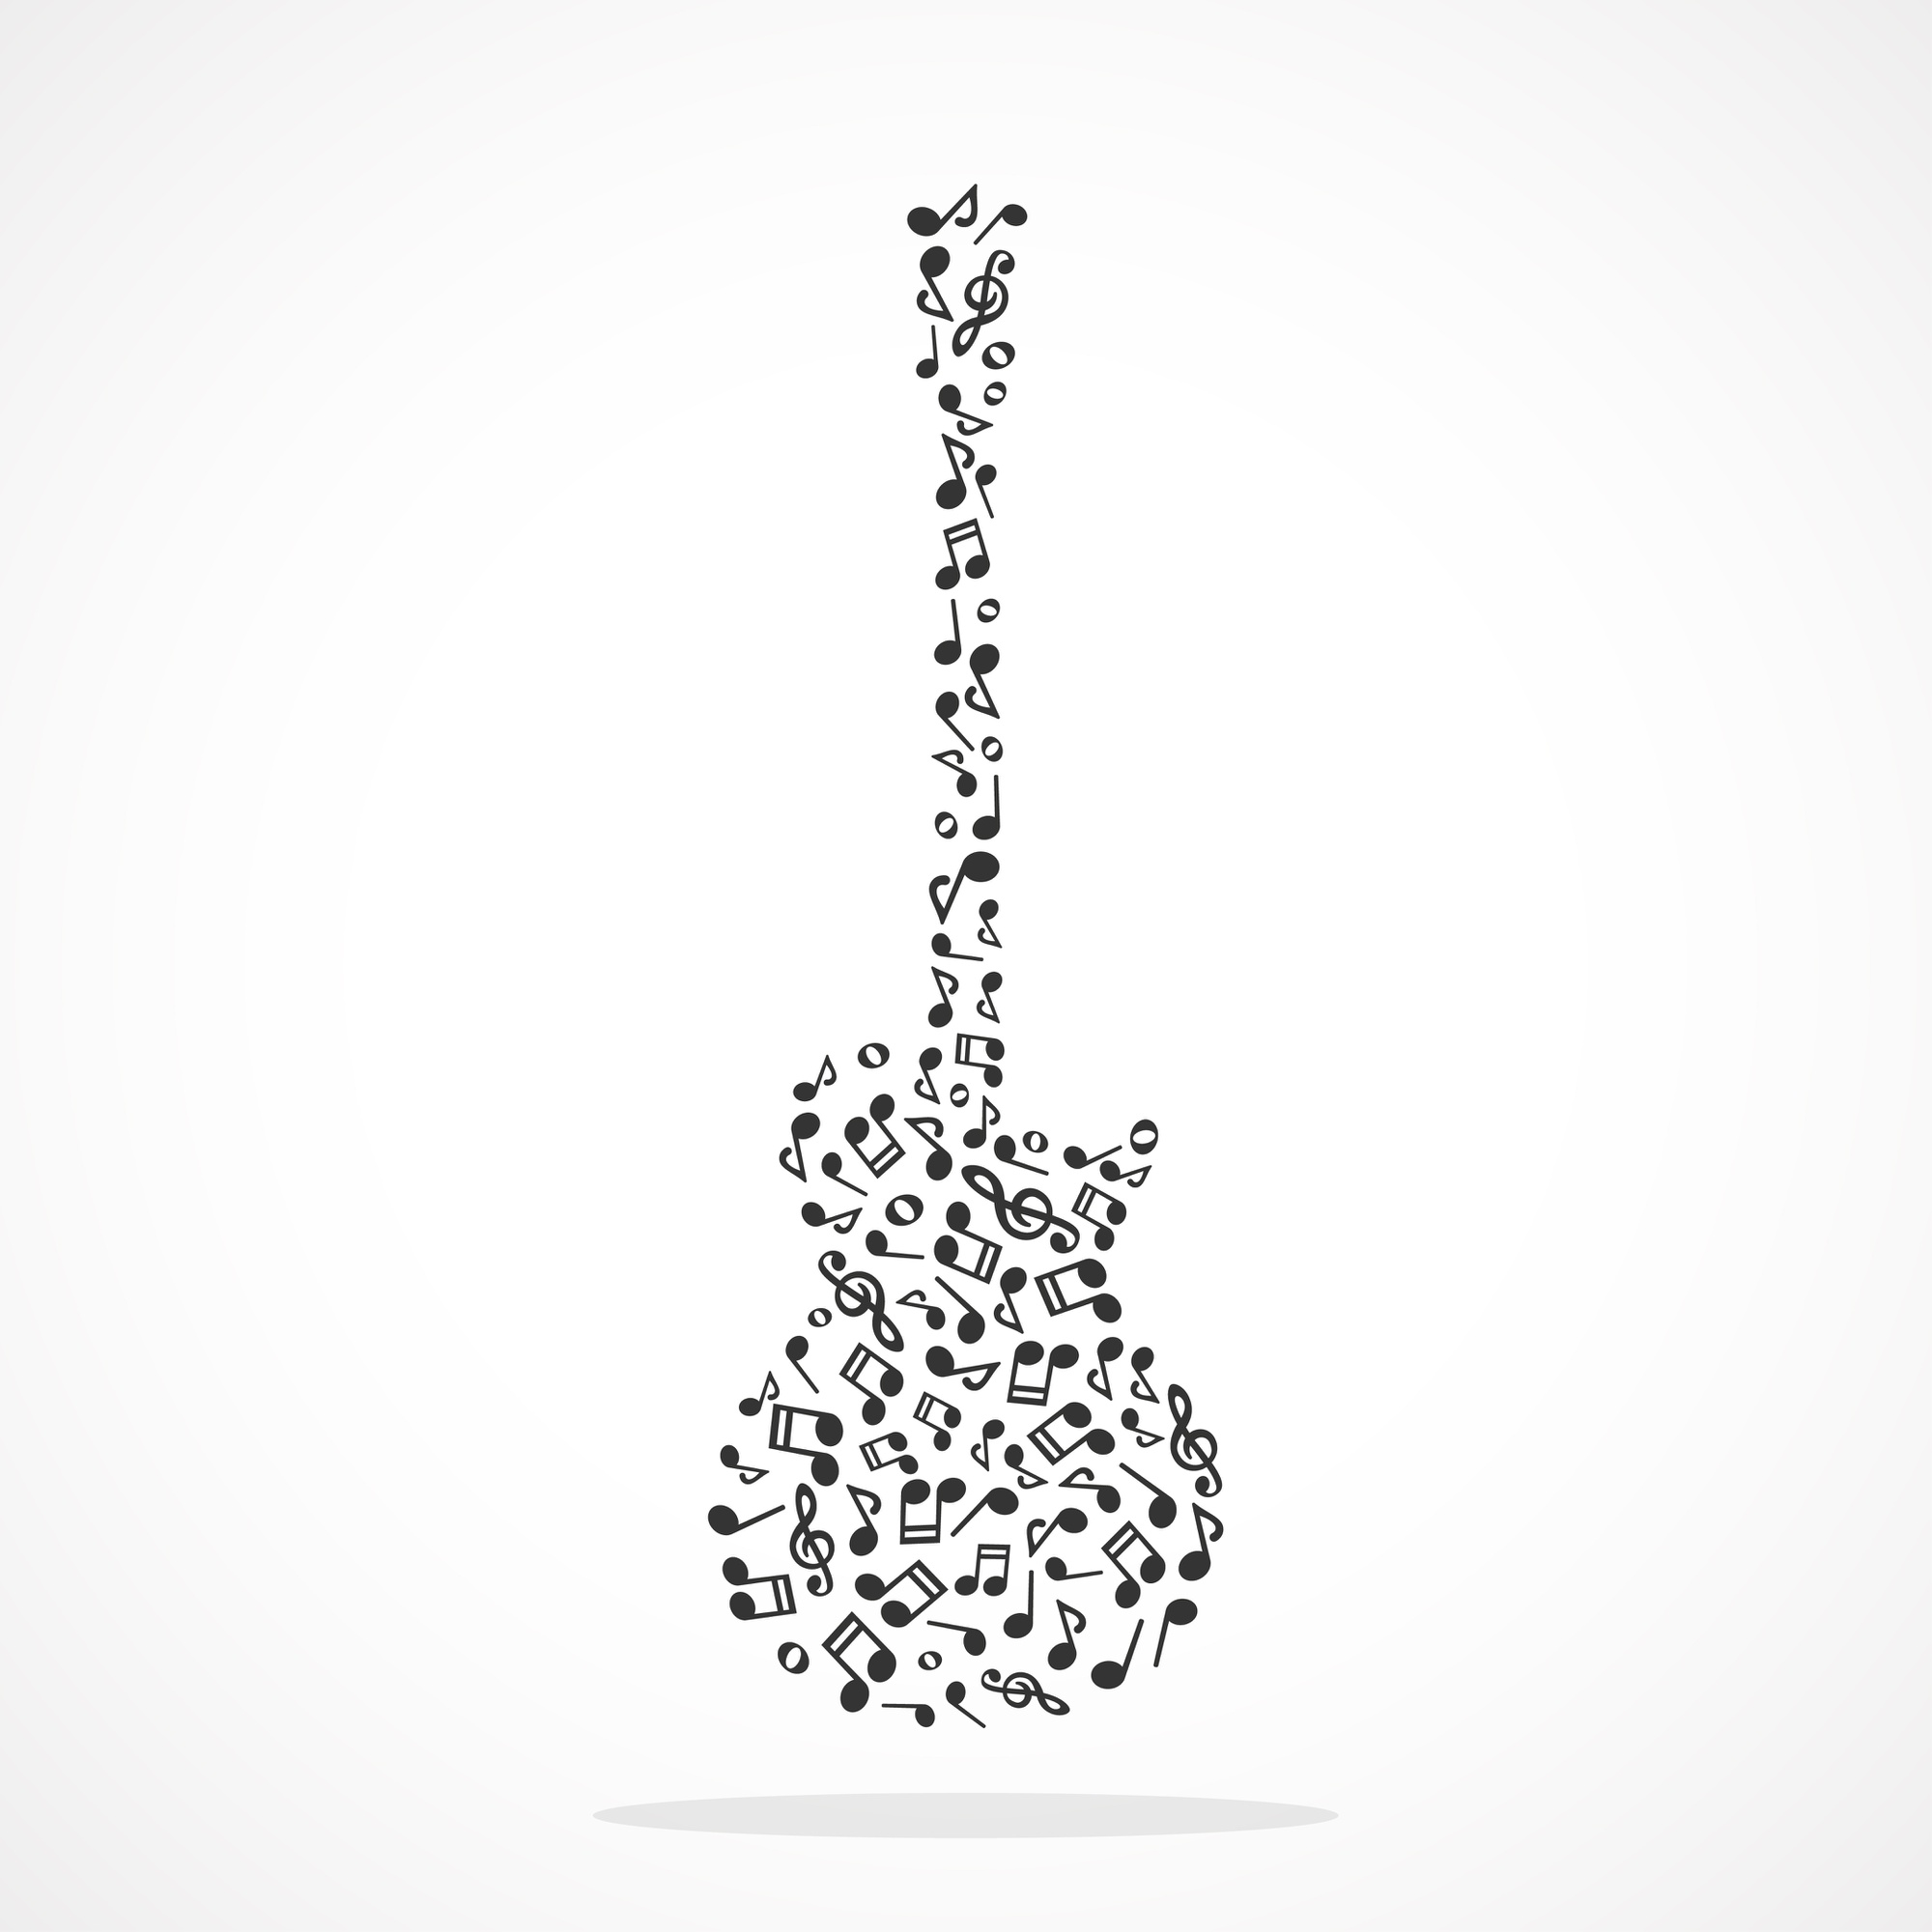 Music notes forming an electric guitar